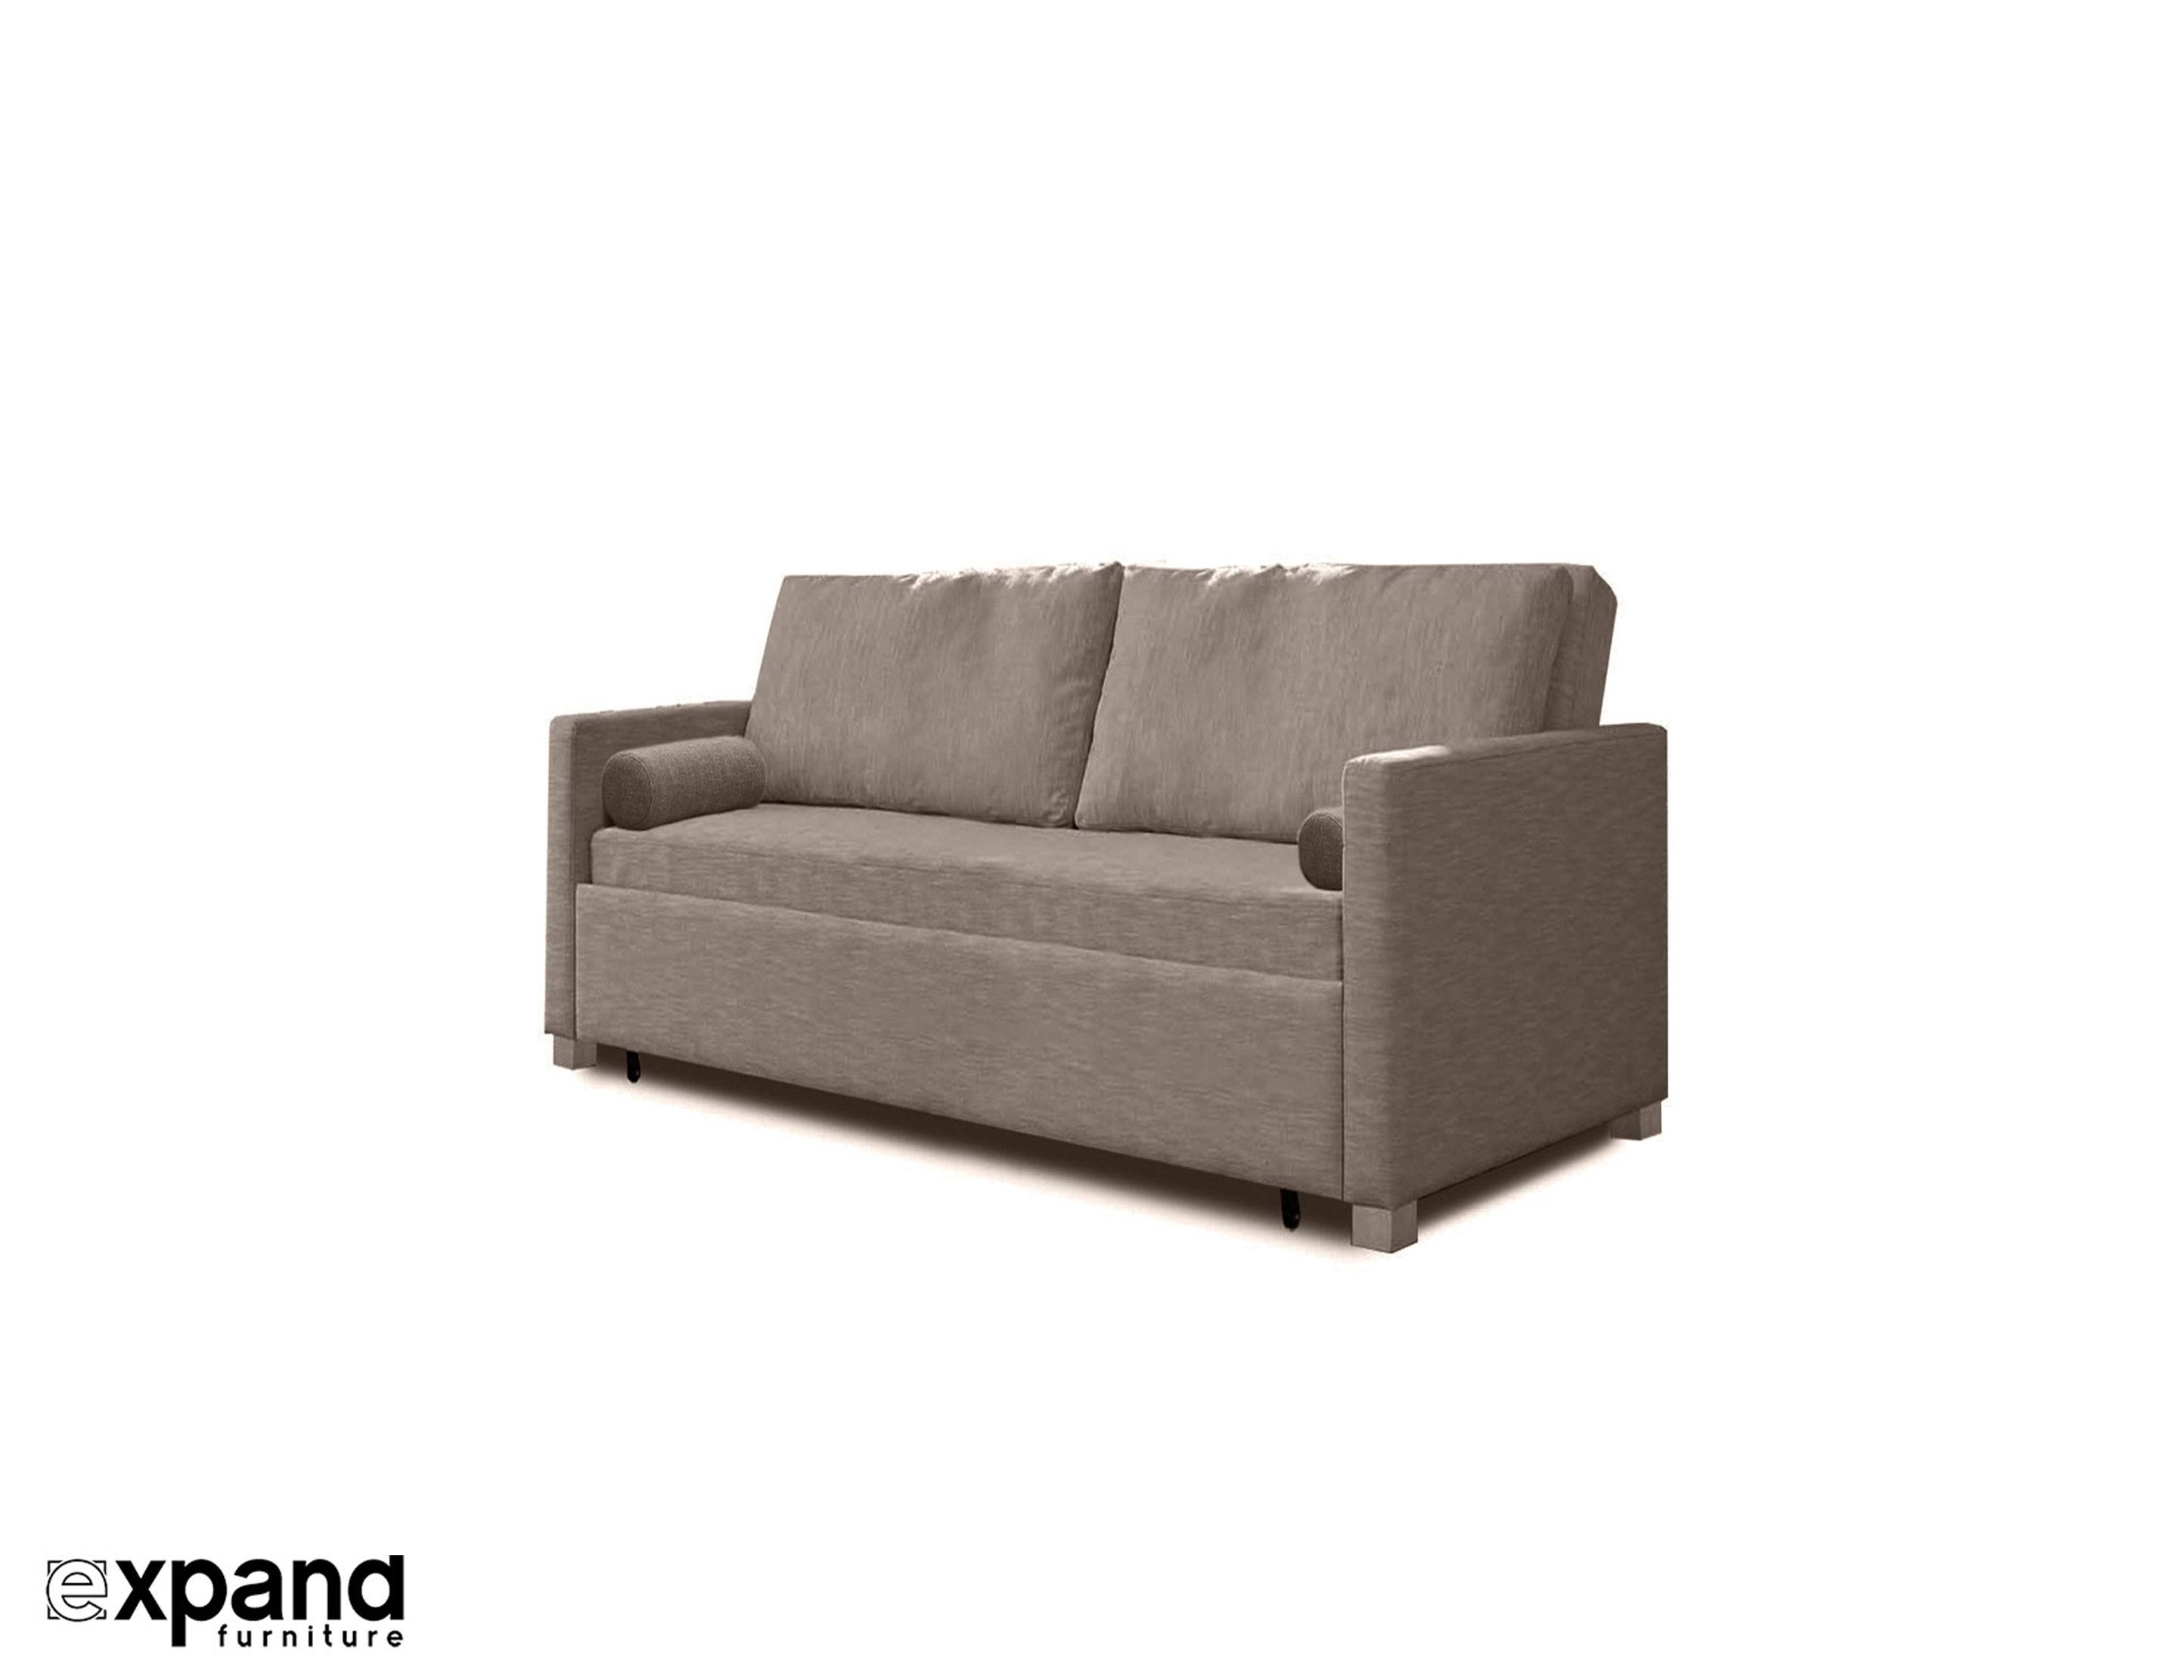 Harmony - Queen Size Memory Foam Sofa Bed | Expand Furniture regarding Sofa Beds Queen (Image 12 of 30)